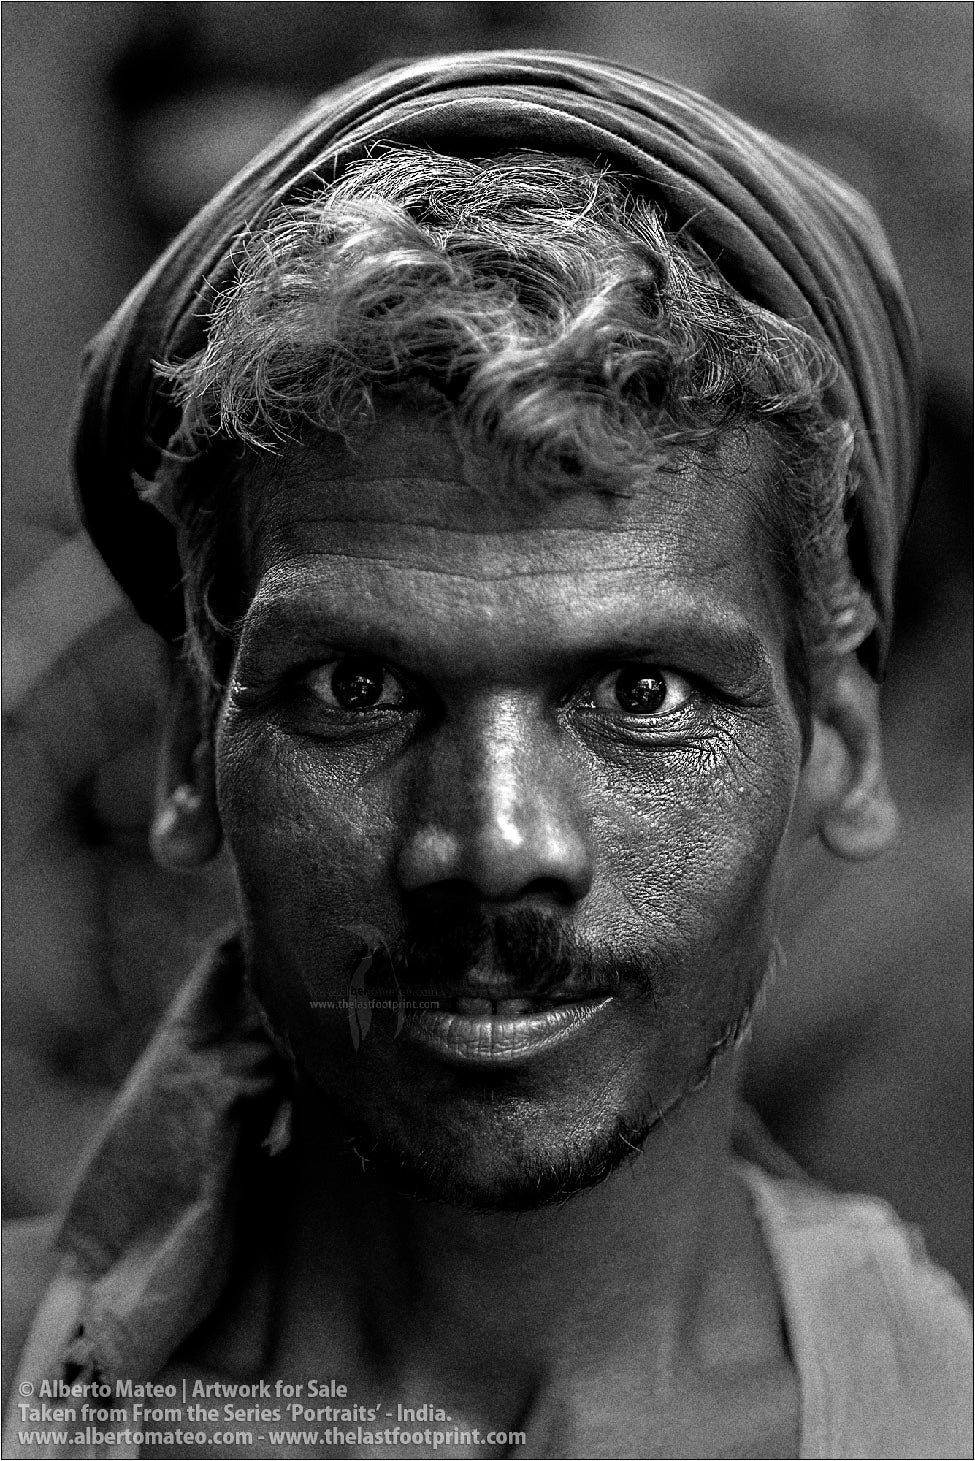 Portrait of Smiling Porter in Bara Bazar streets, Kolkata, India.